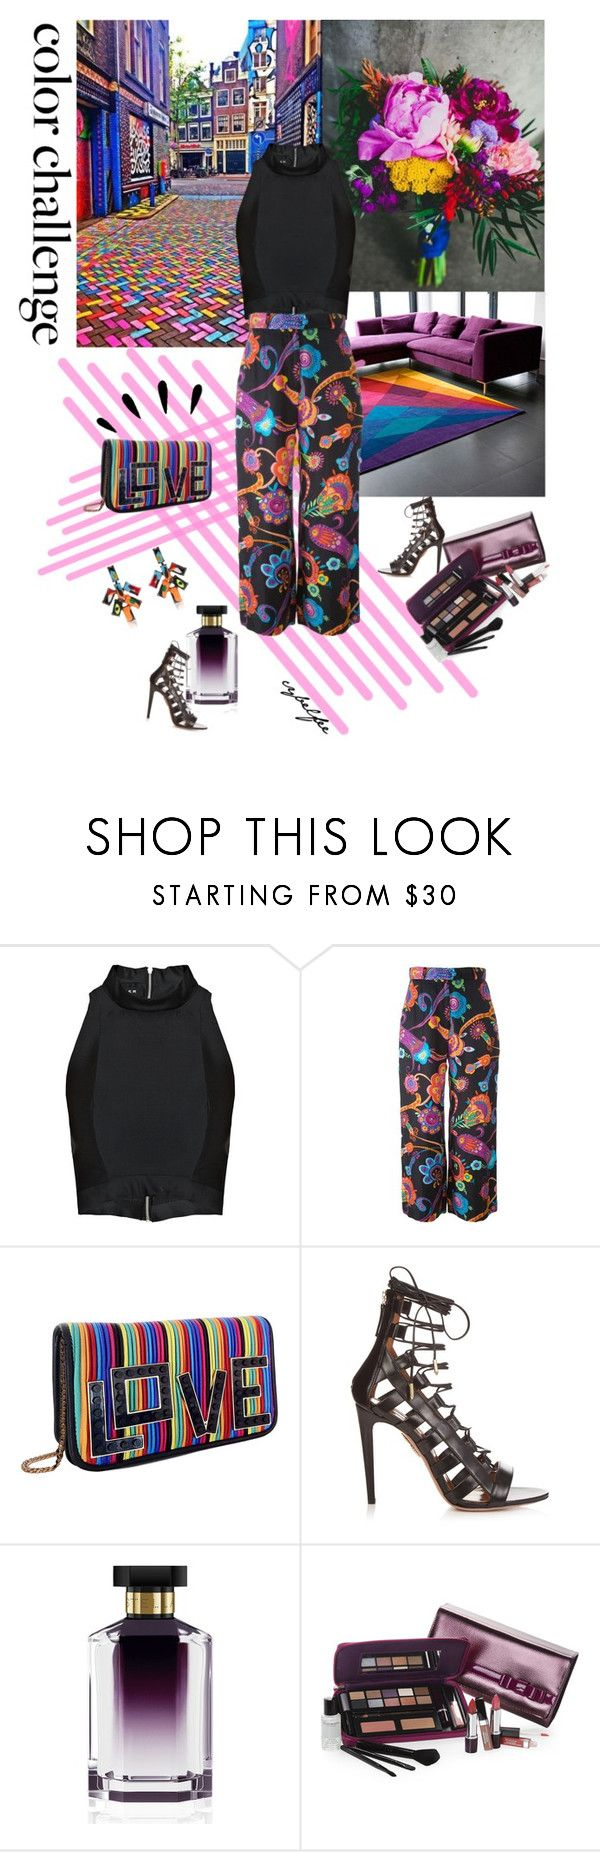 """""""Color challenge"""" by cybelfee on Polyvore featuring Paper London, Moschino, Les Petits Joueurs, Aquazzura, STELLA McCARTNEY, Elizabeth Arden, Tom Binns, Old Navy and polyvoreeditorial"""